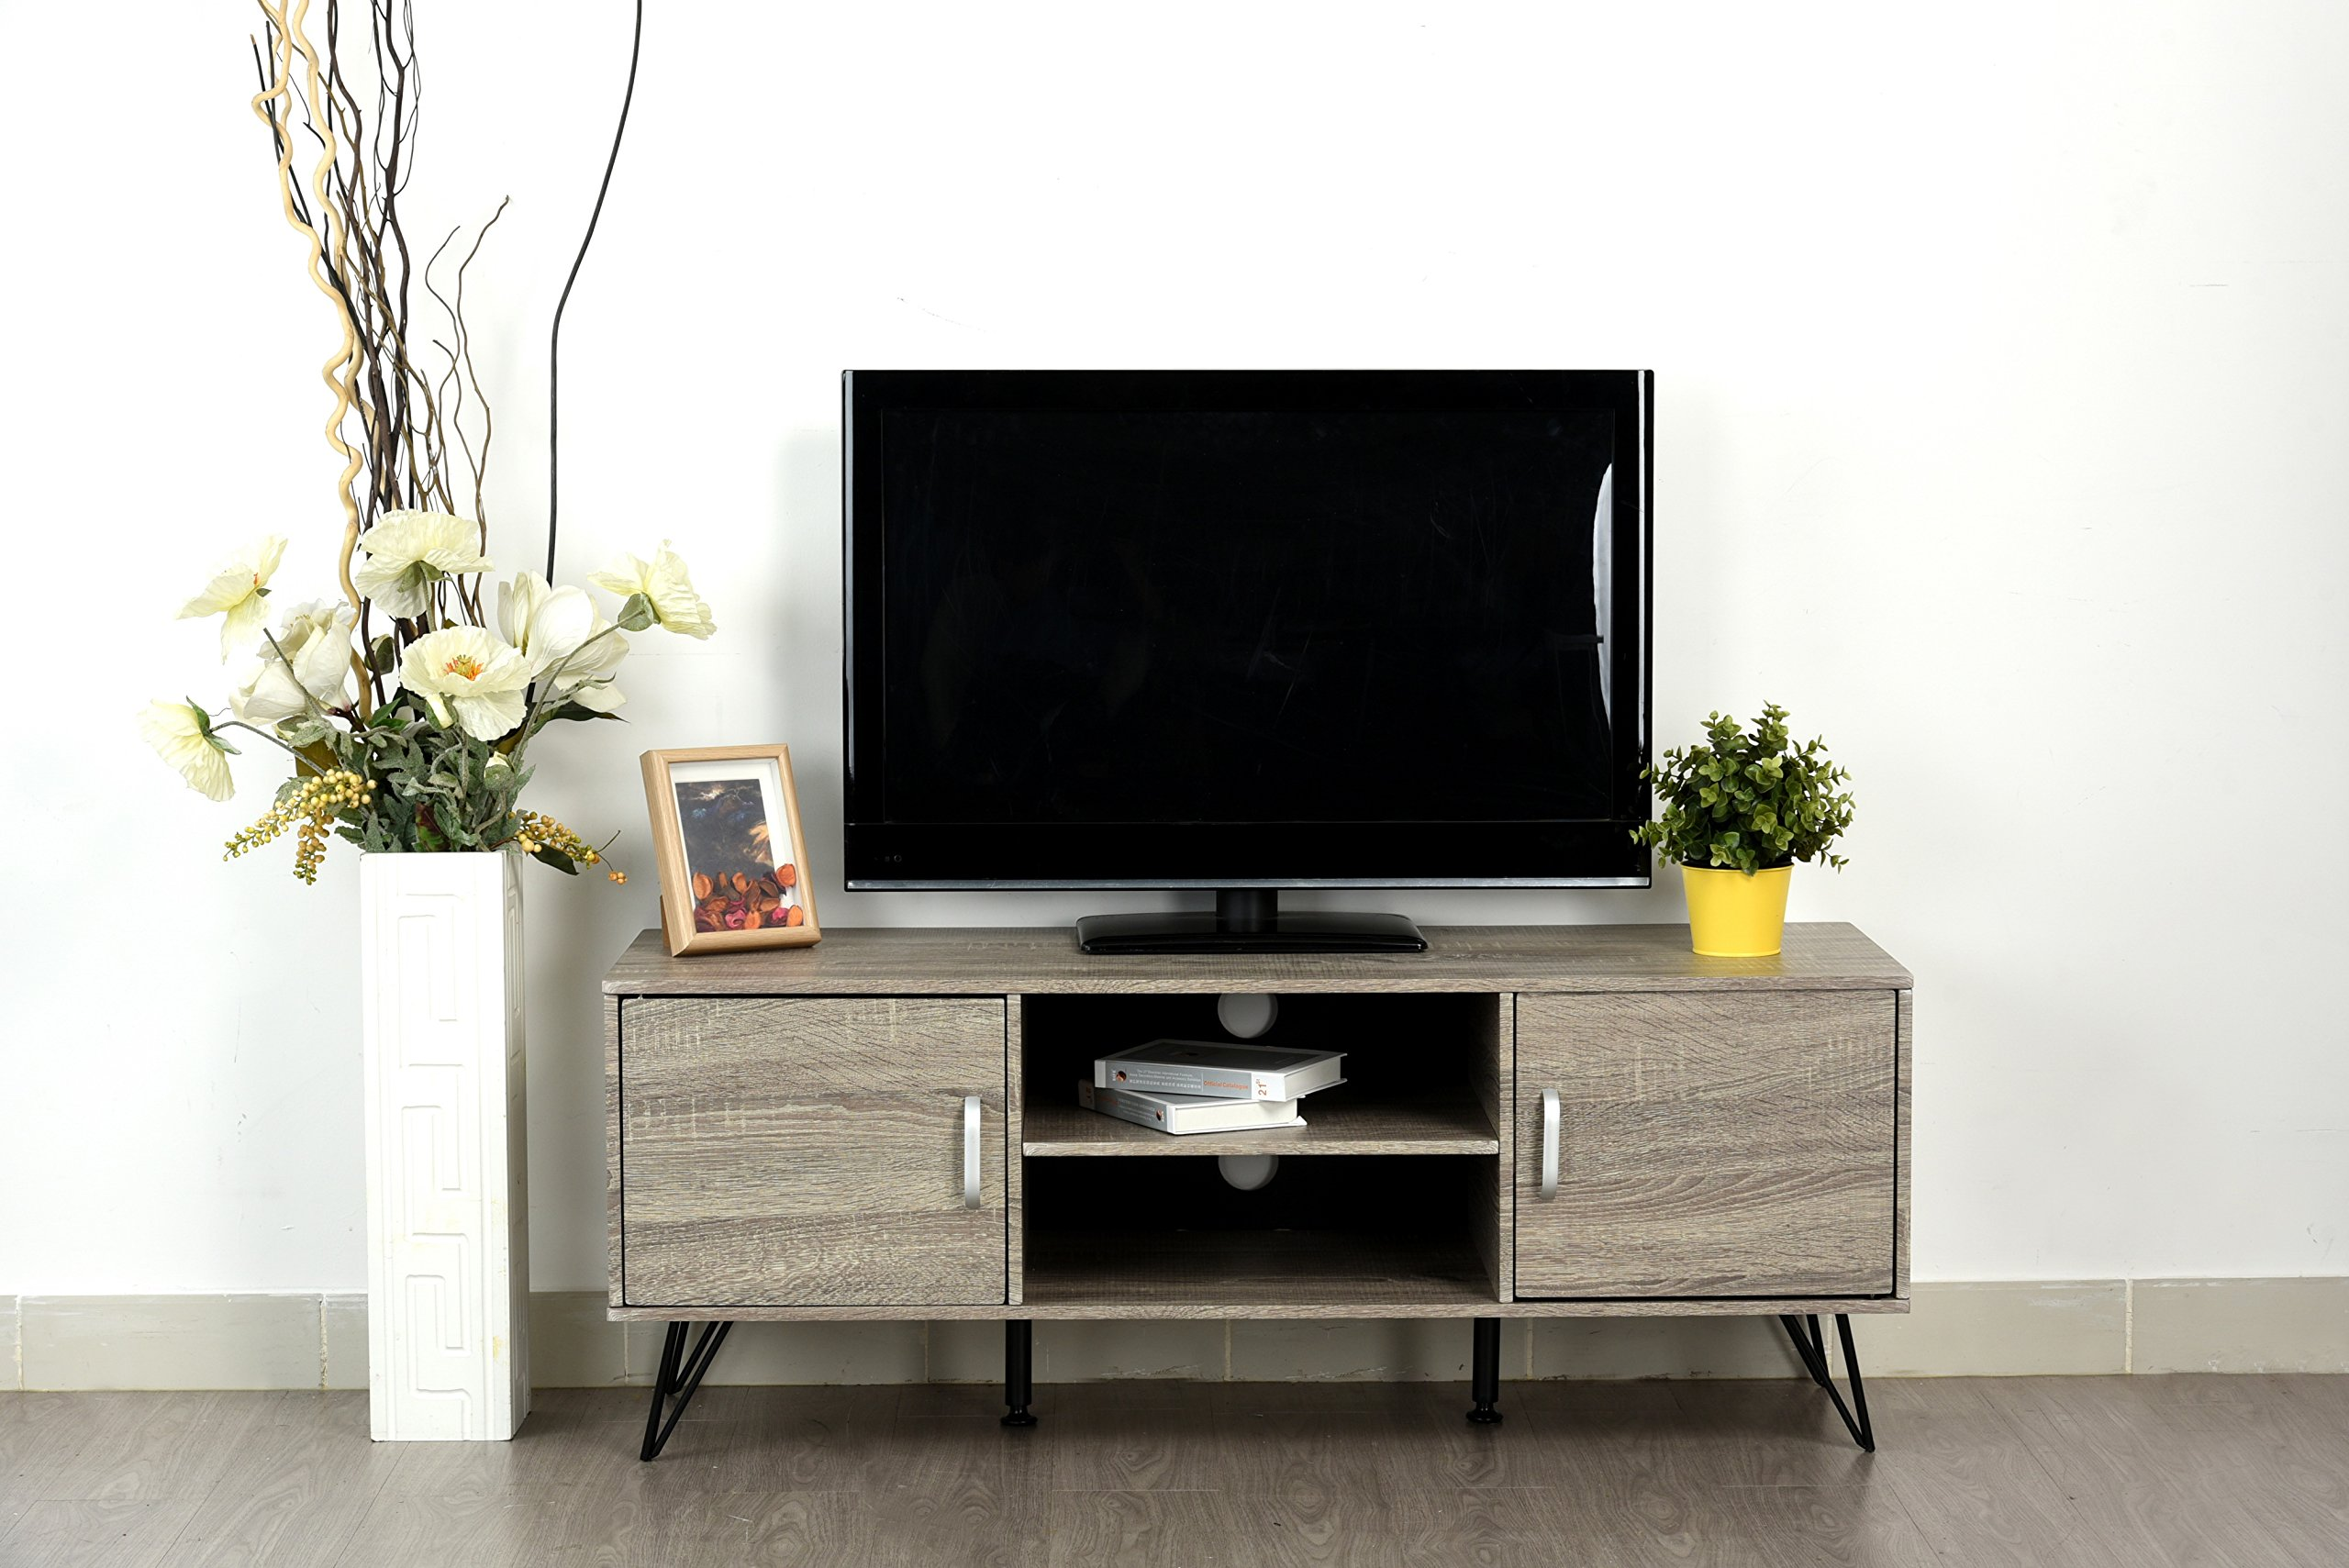 Weathered Grey Oak Finish TV Entertainment Center Console Cabinet Stand with Two Doors and Shelves by eHomeProducts